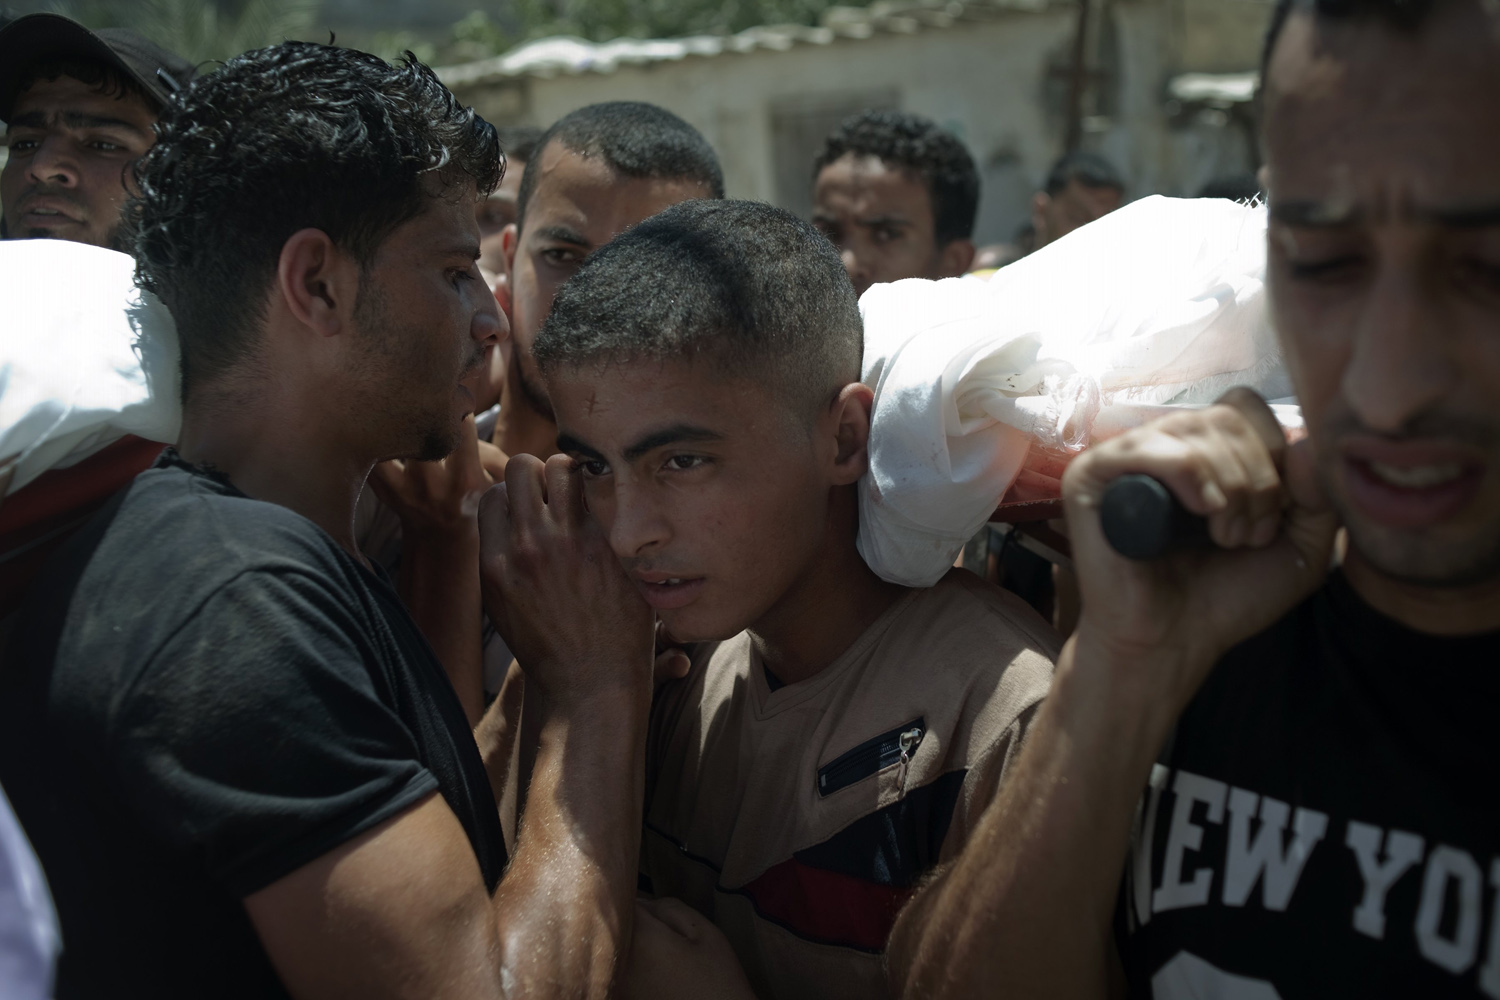 Jul. 10, 2014. Palestinian mourners carry the body of a Al Haj family member during the family's funeral in Khan Yunis, Palestine. A total of 8 family members of the Al Haj family died in an Israeli Airstrike during Operation Protective Edge of Israel.